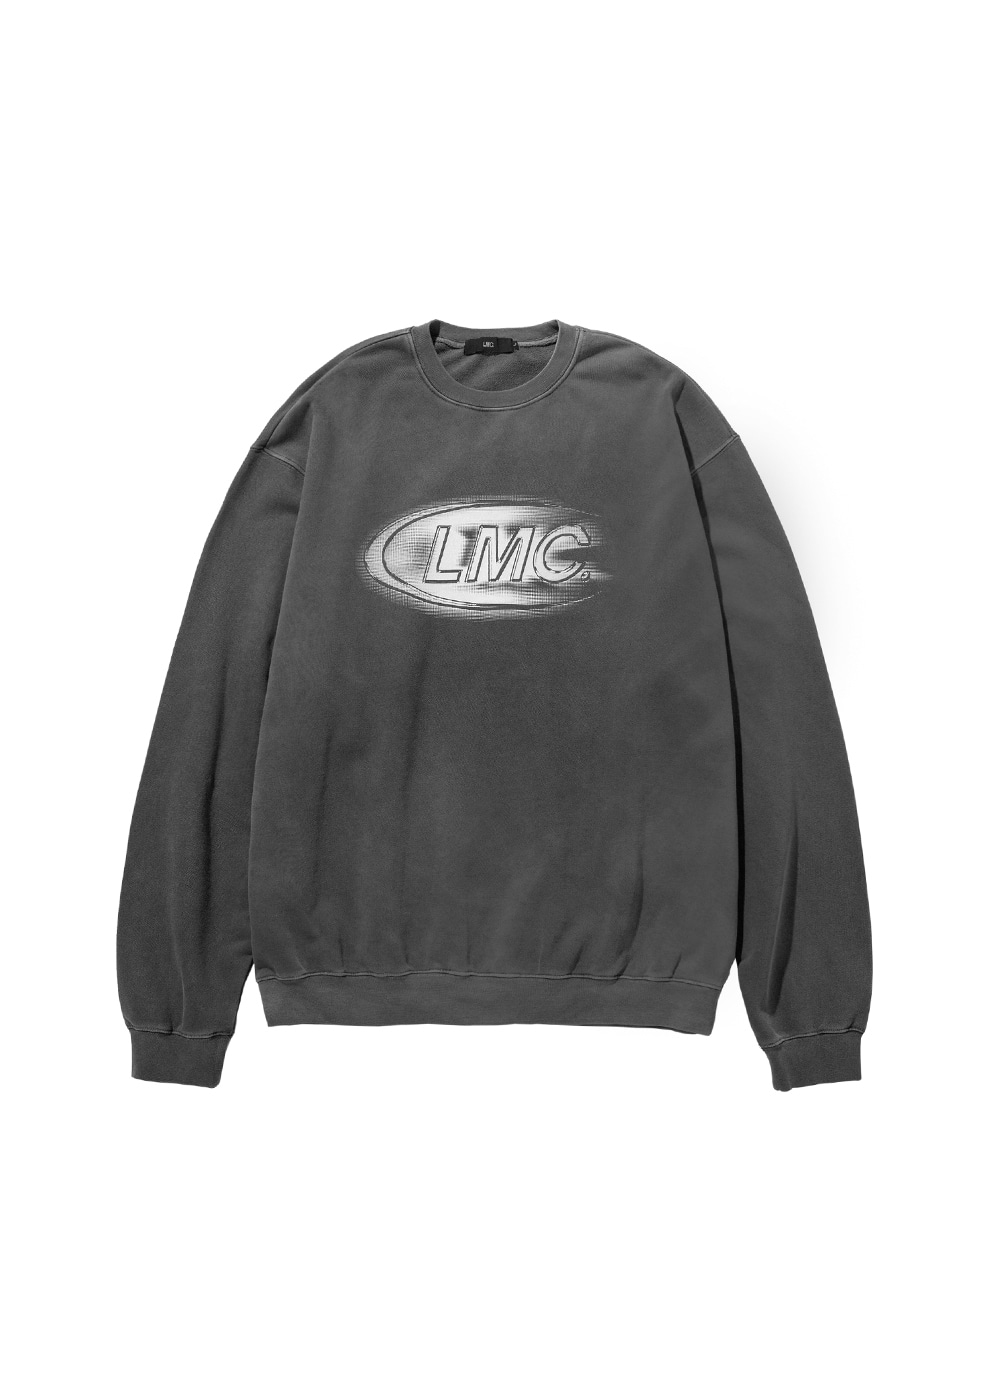 LMC SHINING CO SWEATSHIRT dark gray